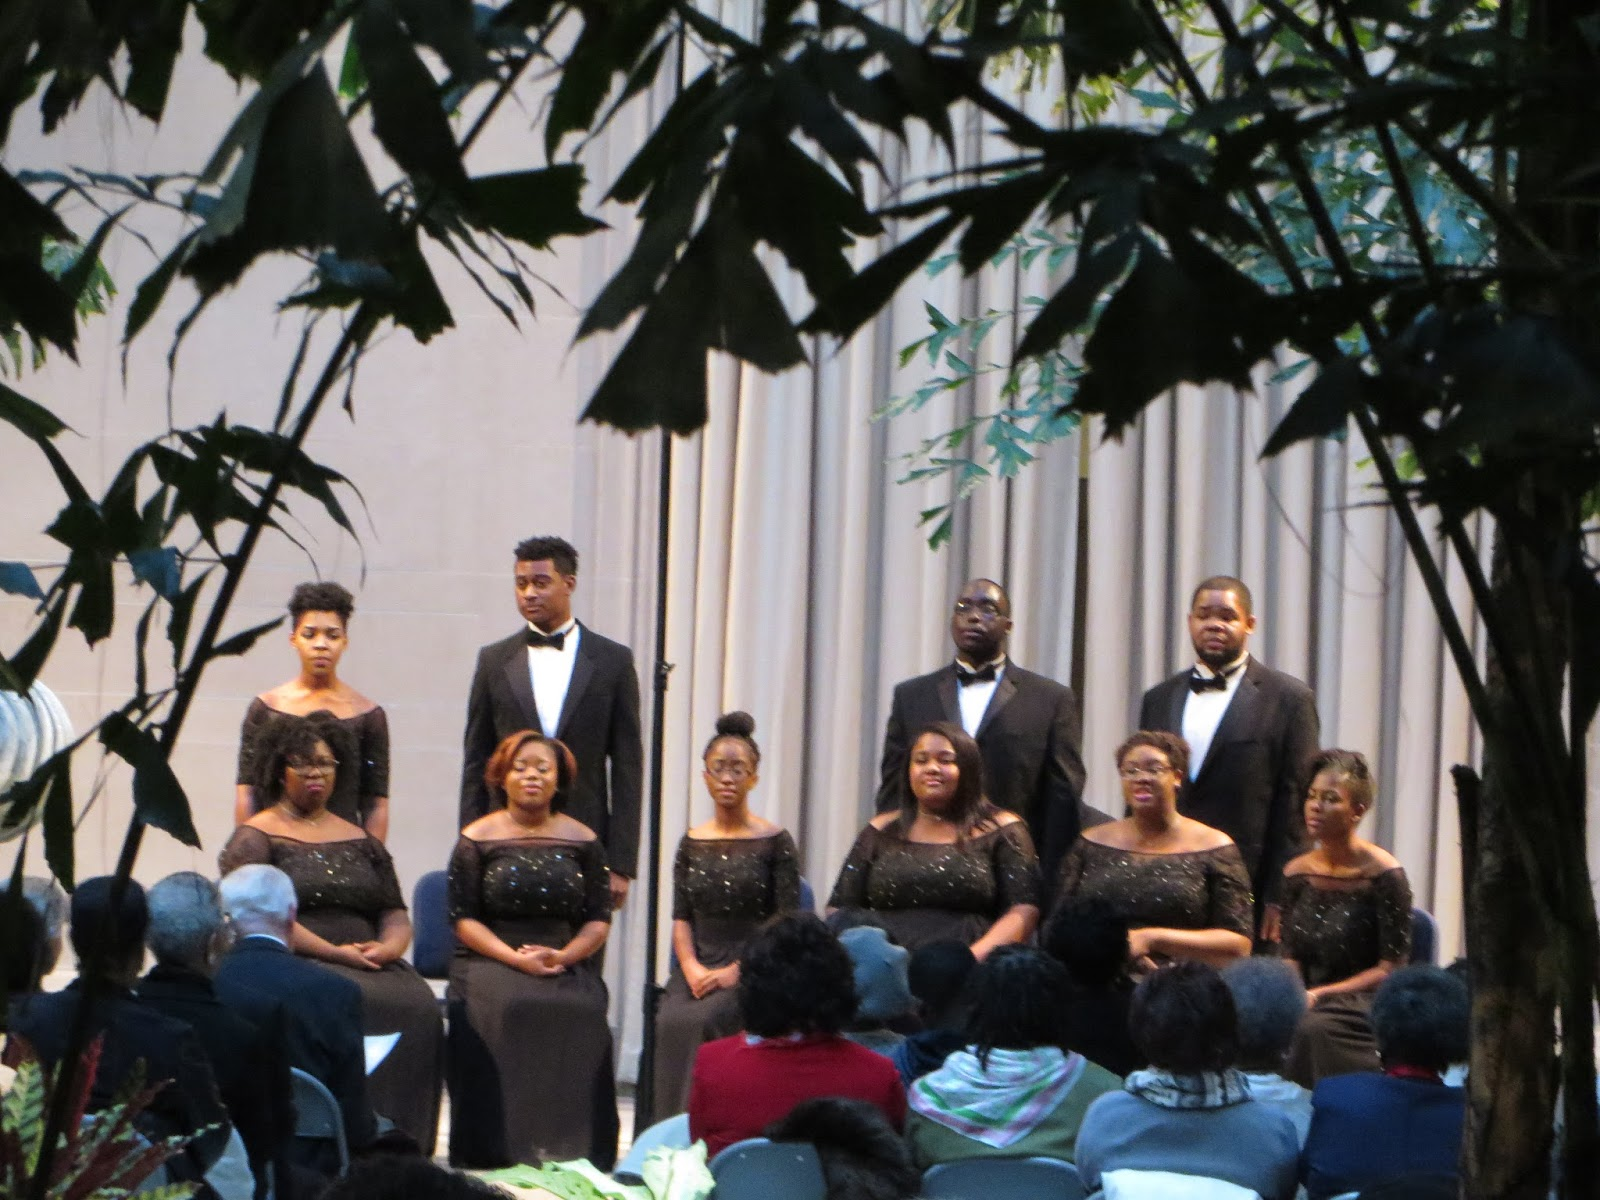 fisk jubilee singers rise shine. the fisk jubilee singers at national gallery of art jan 17 2016photo by patricia leslie rise shine